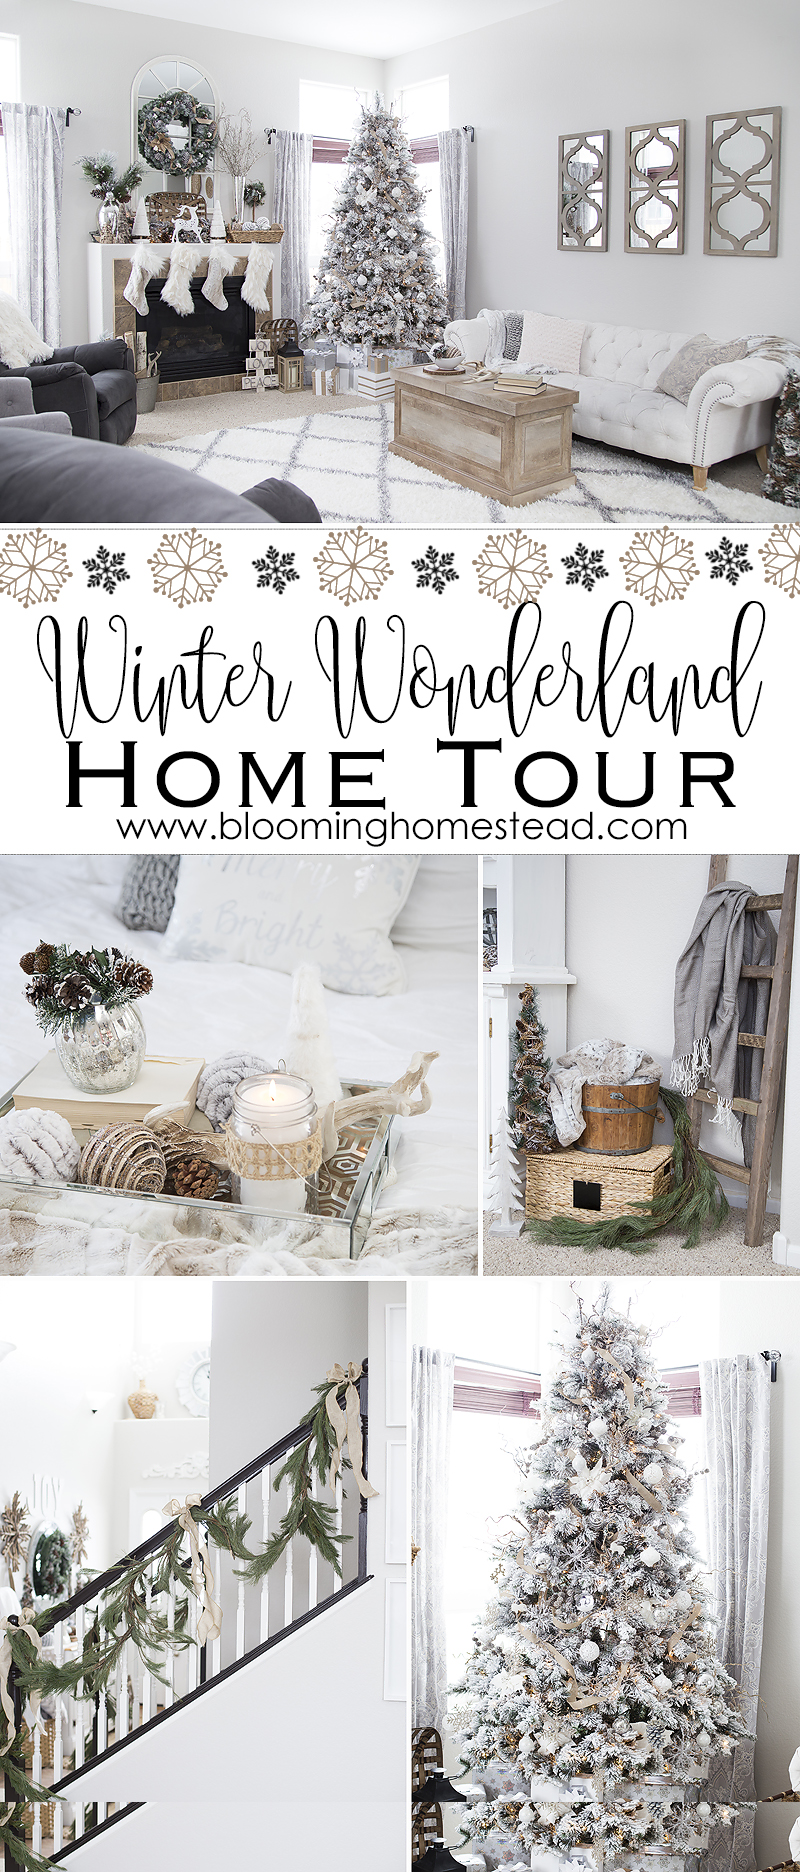 Rustic Christmas Home Tour featuring farmhouse style winter wonderland holiday Christmas Decor.